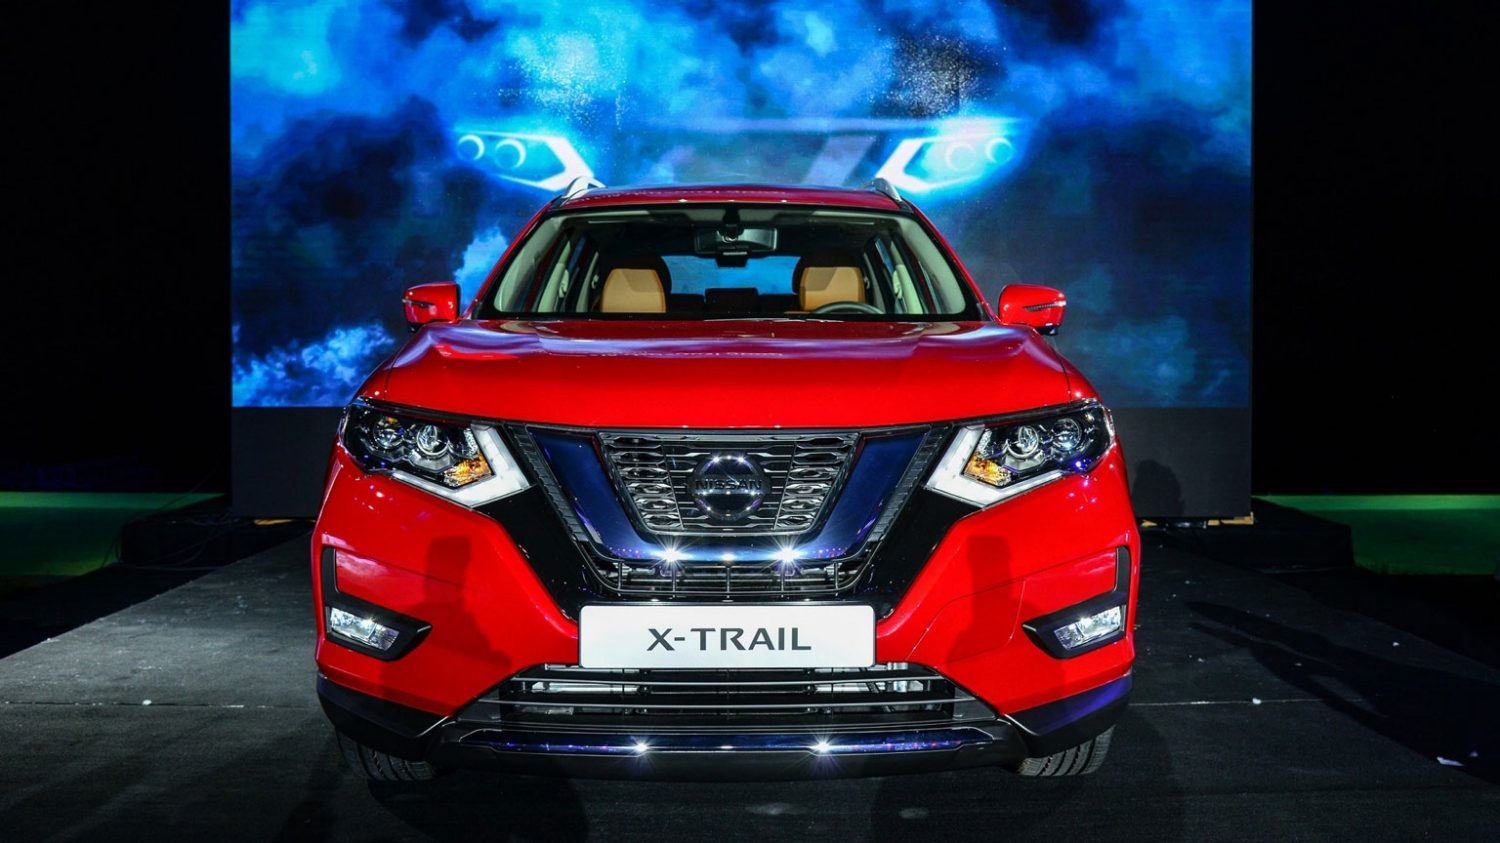 World's Best-Selling SUV, Nissan X-TRAIL 2018 Launches in the Middle East with Upgraded Enhancements